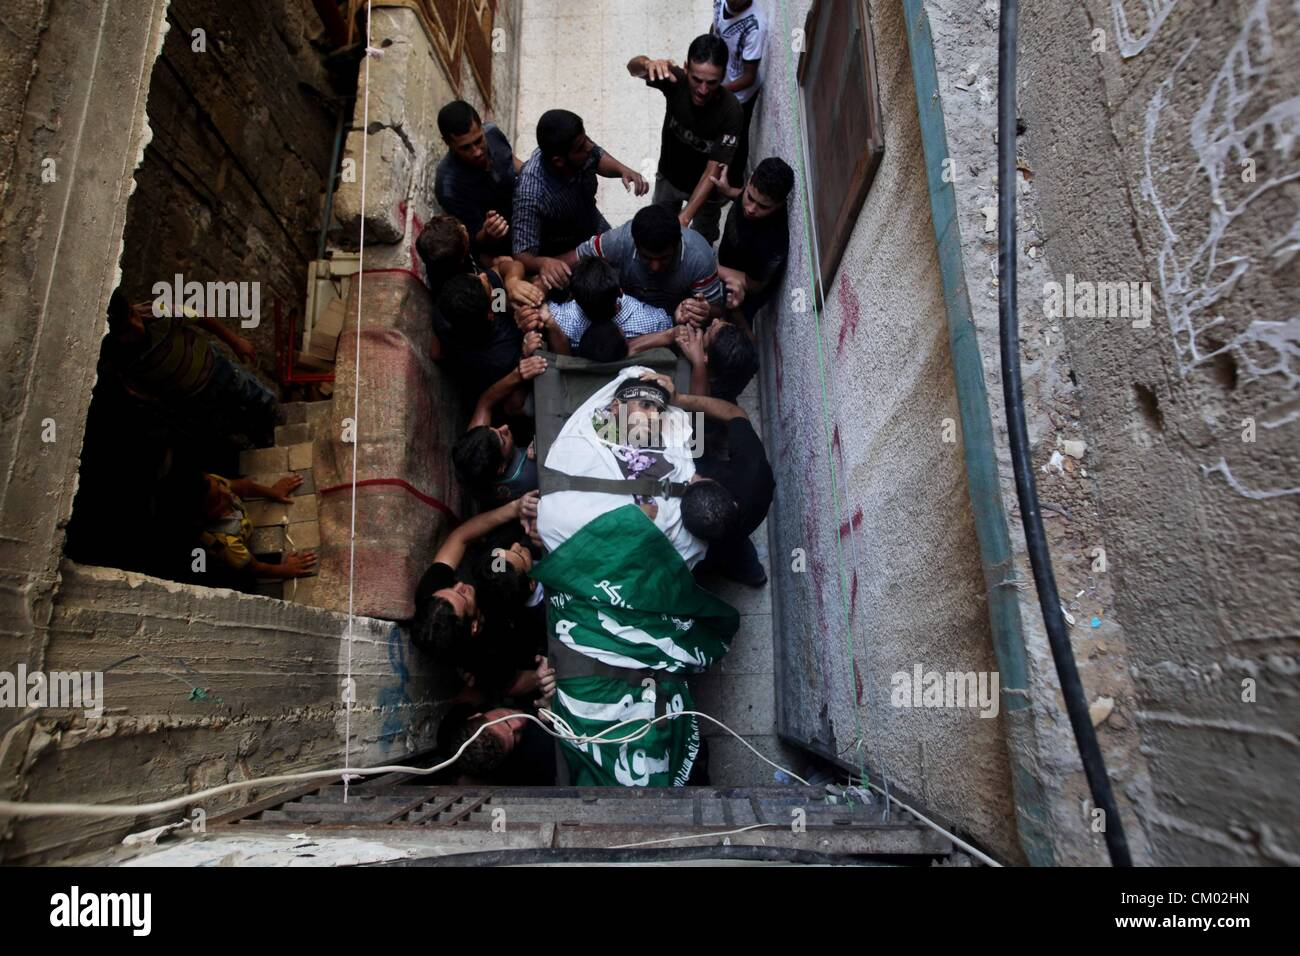 Sept. 6, 2012 - Gaza City, Gaza Strip - Mourners carry the body of ZAKARIA AL GAMMAL during his funeral, after an - Stock Image